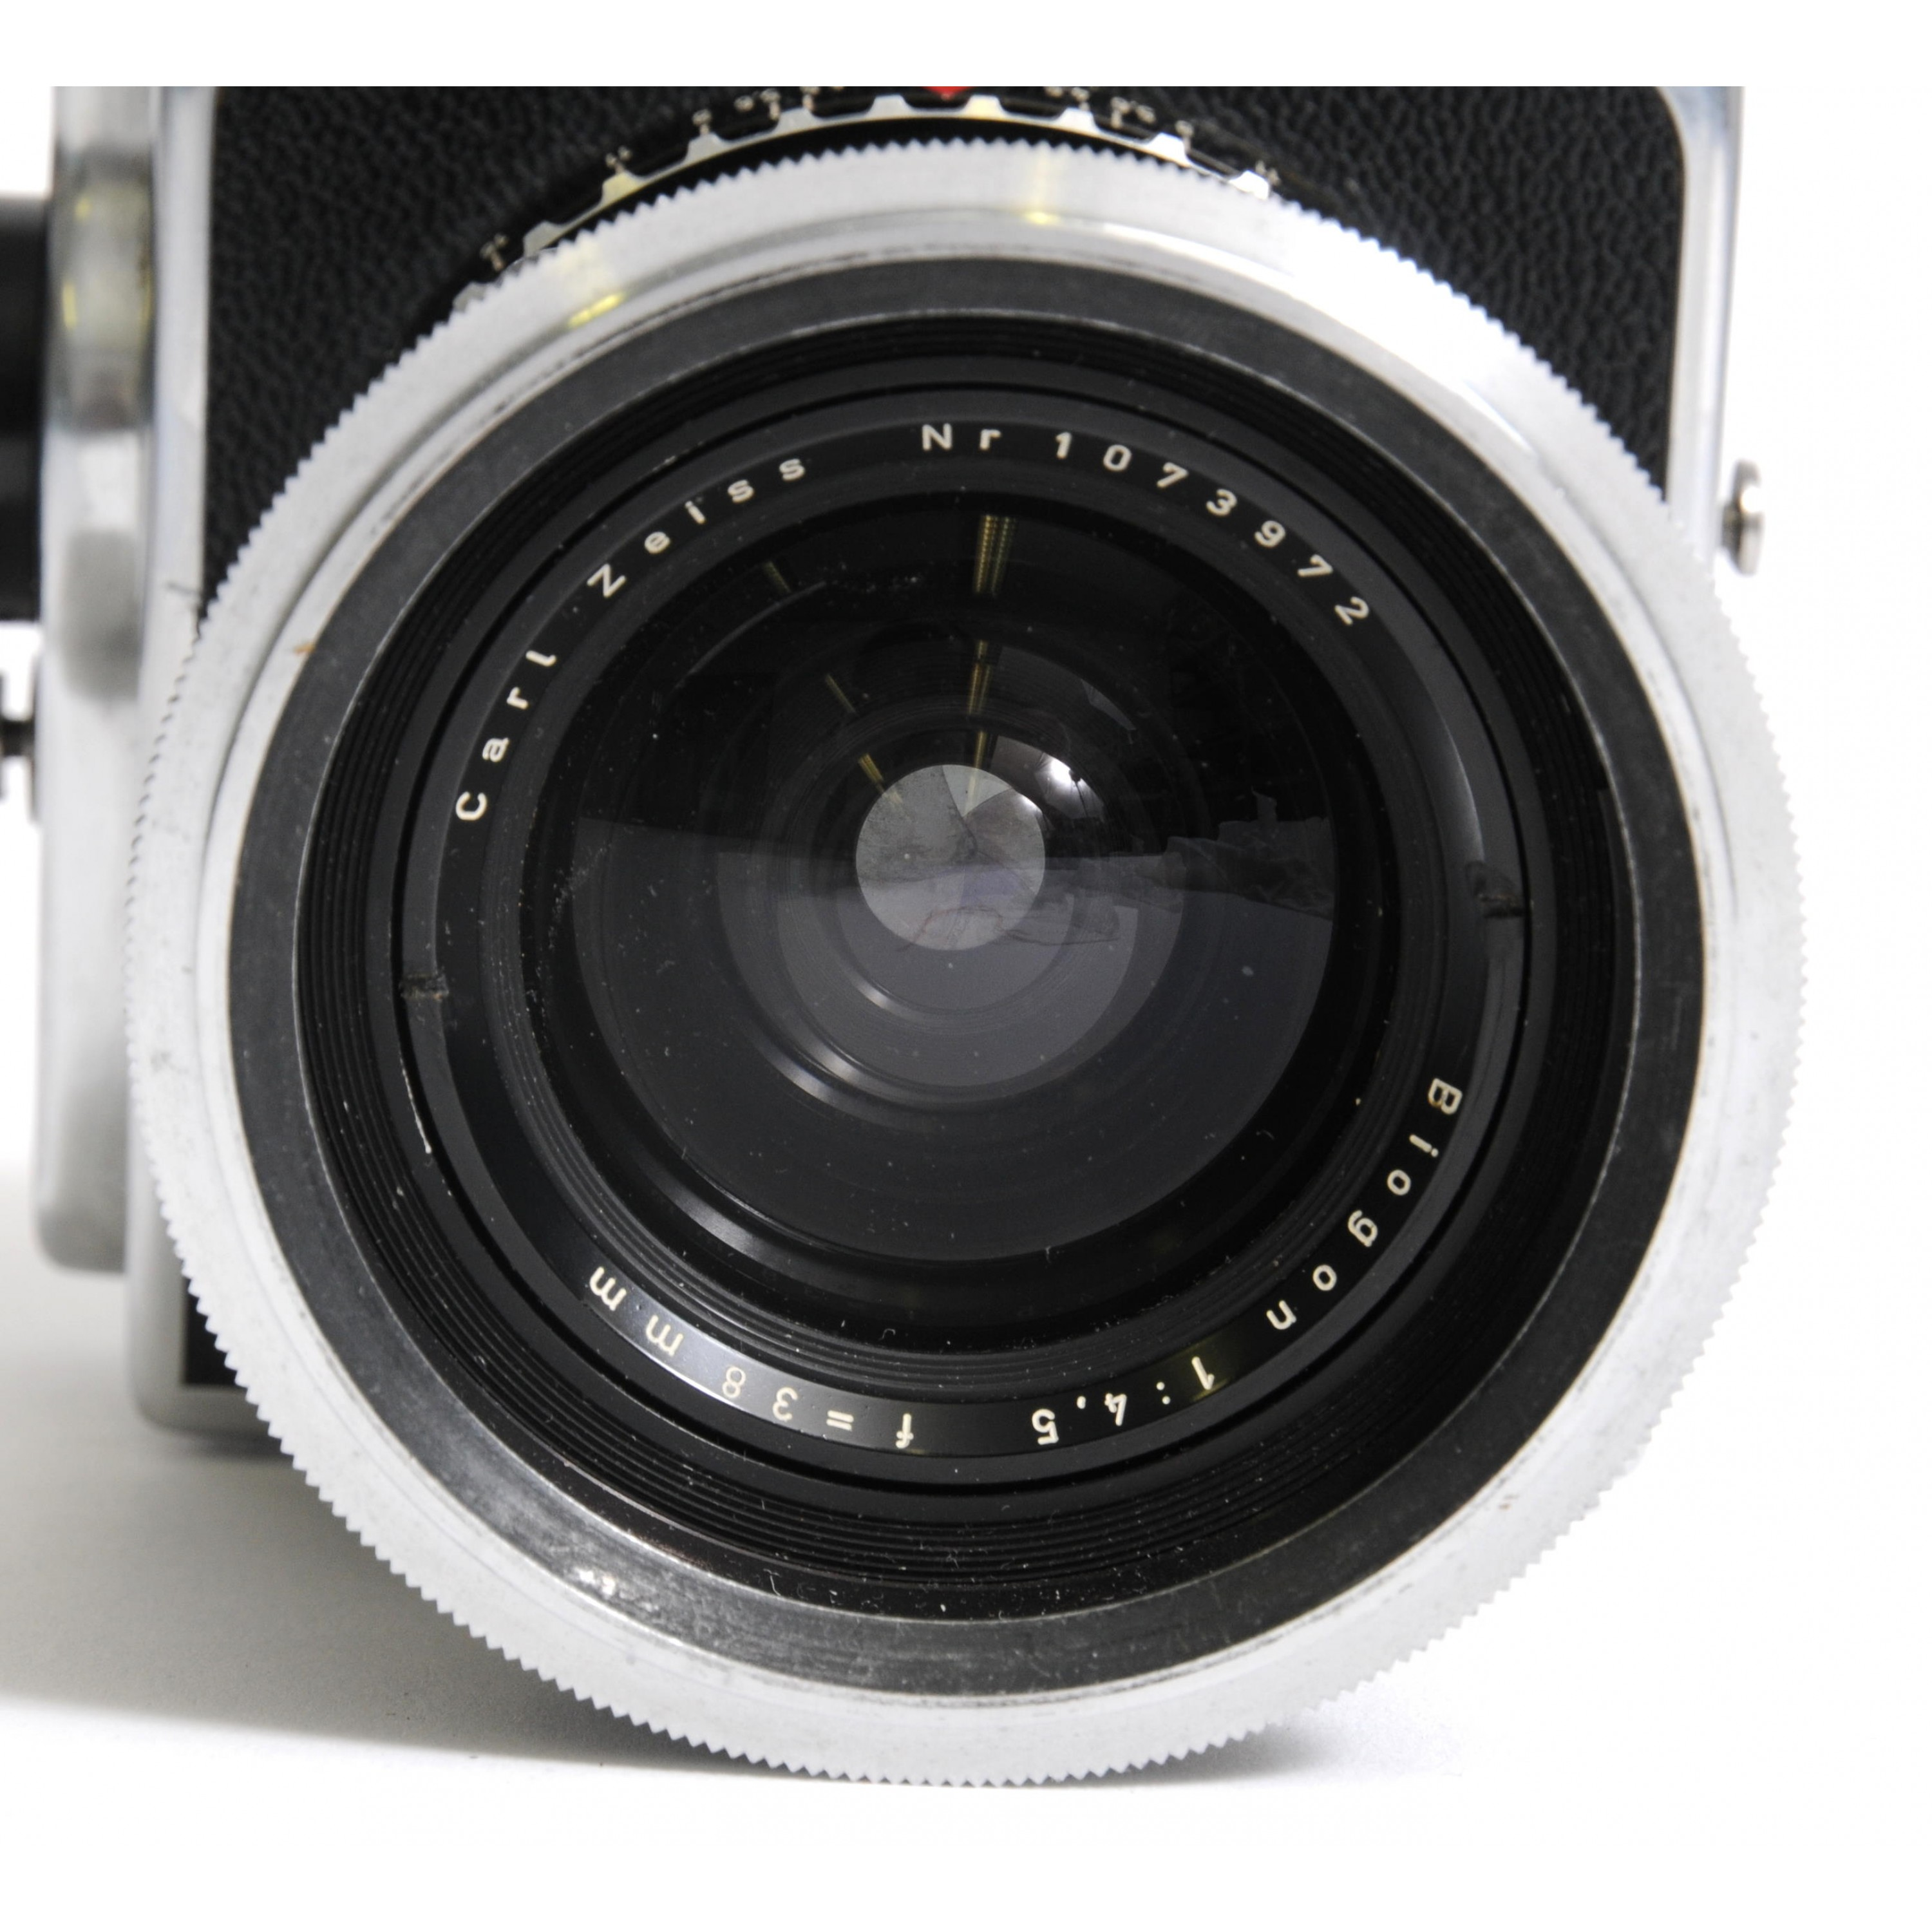 Hasselblad Supreme wide Angle Type 1. very rare with Biogon 38mm lens